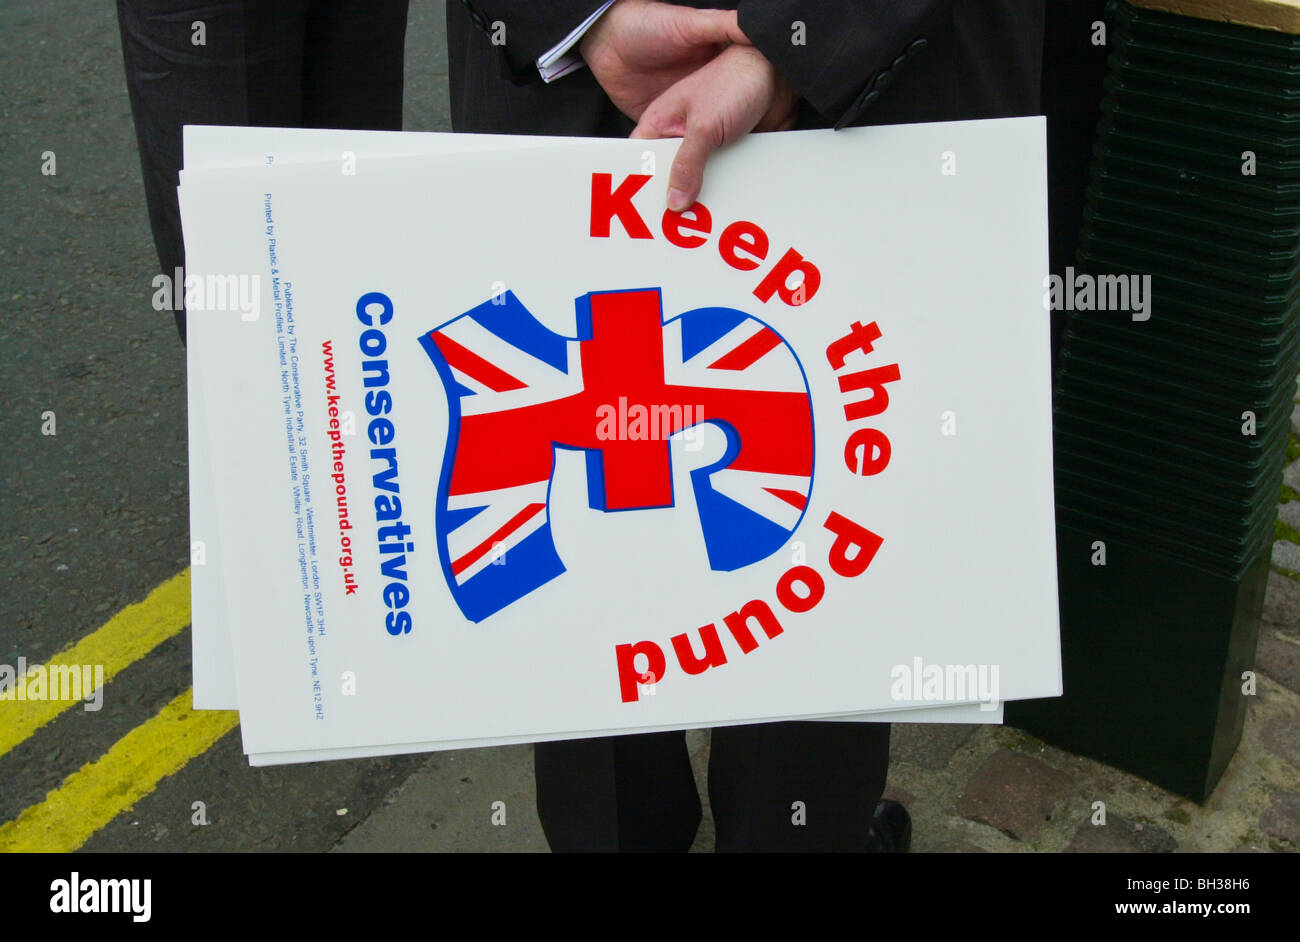 KEEP THE POUND Conservative Party poster during the 2001 General Election - Stock Image